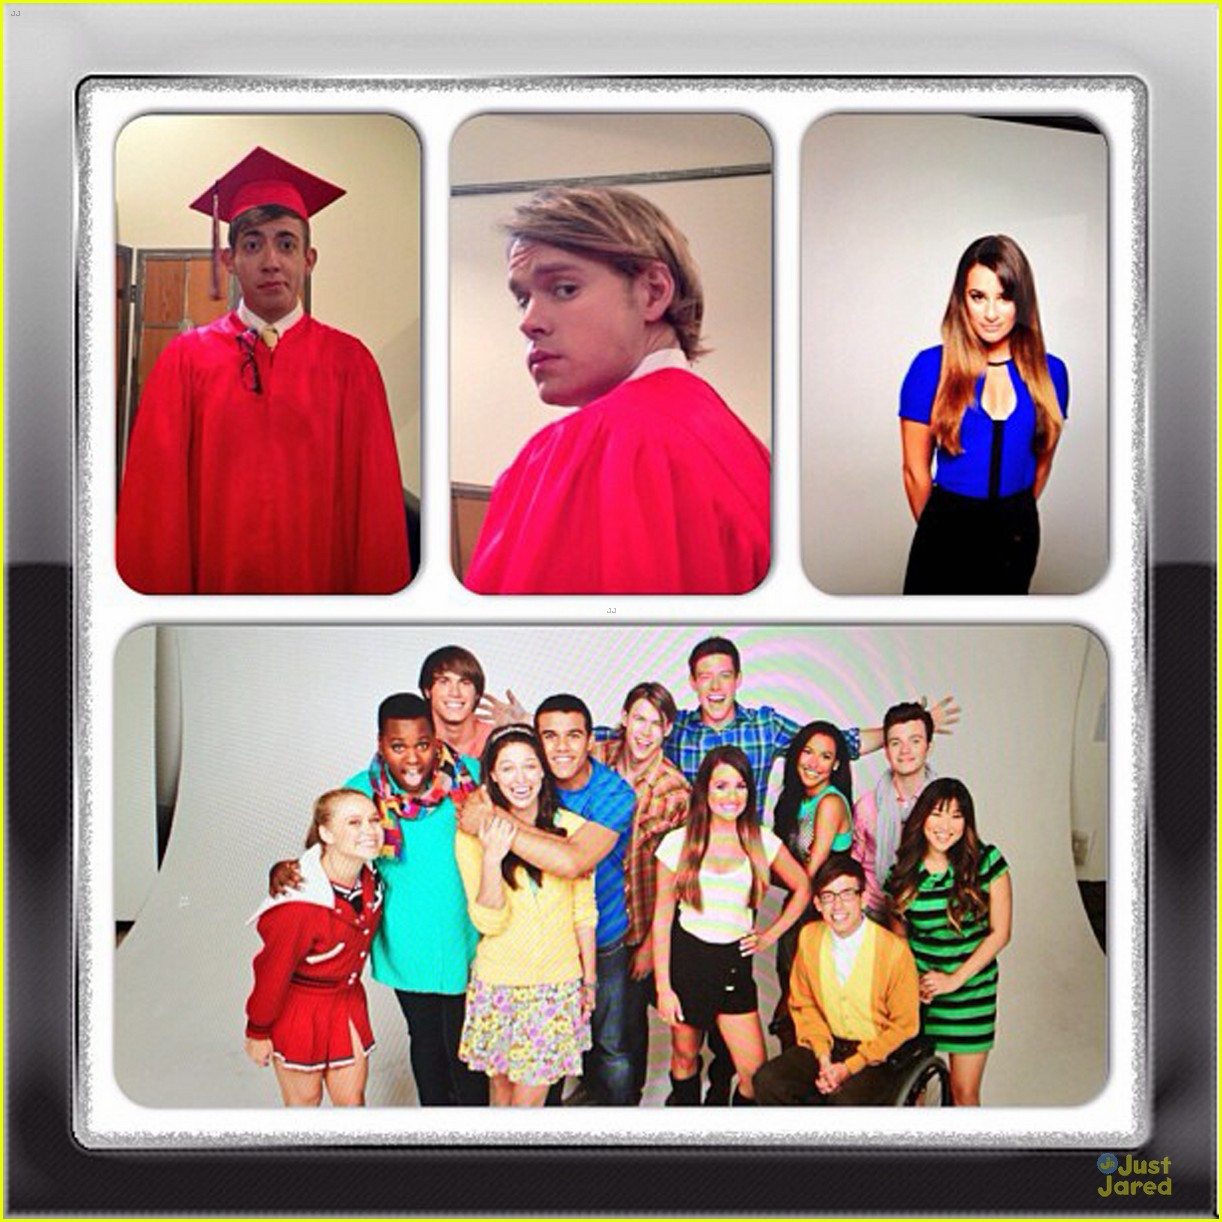 lea michele cory monteith glee photo shoot for season 5 05